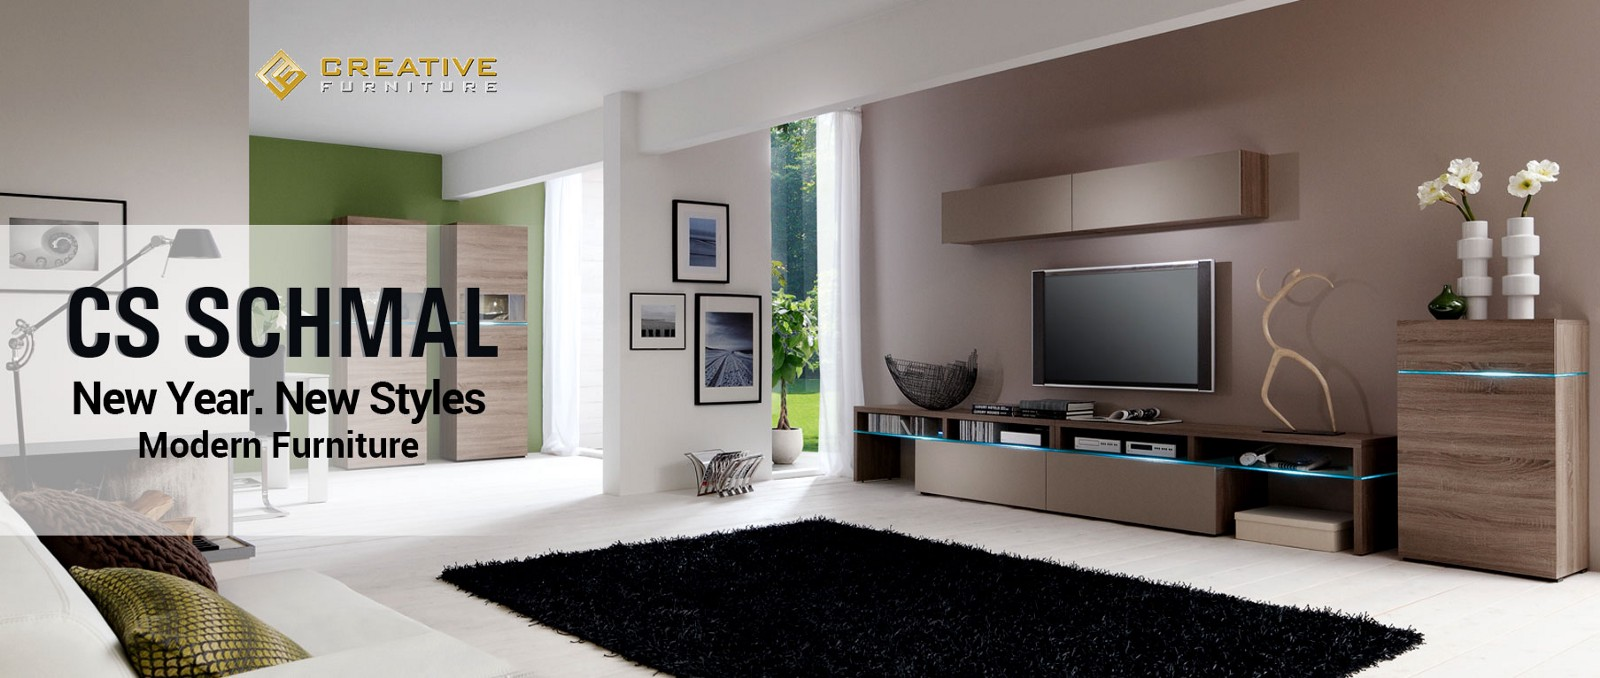 ... In Our Power To Provide End Customers With High Quality And Affordable  Carry On Furniture. Browse Our Best Selling Modern CS Schmal Furniture  Online ...